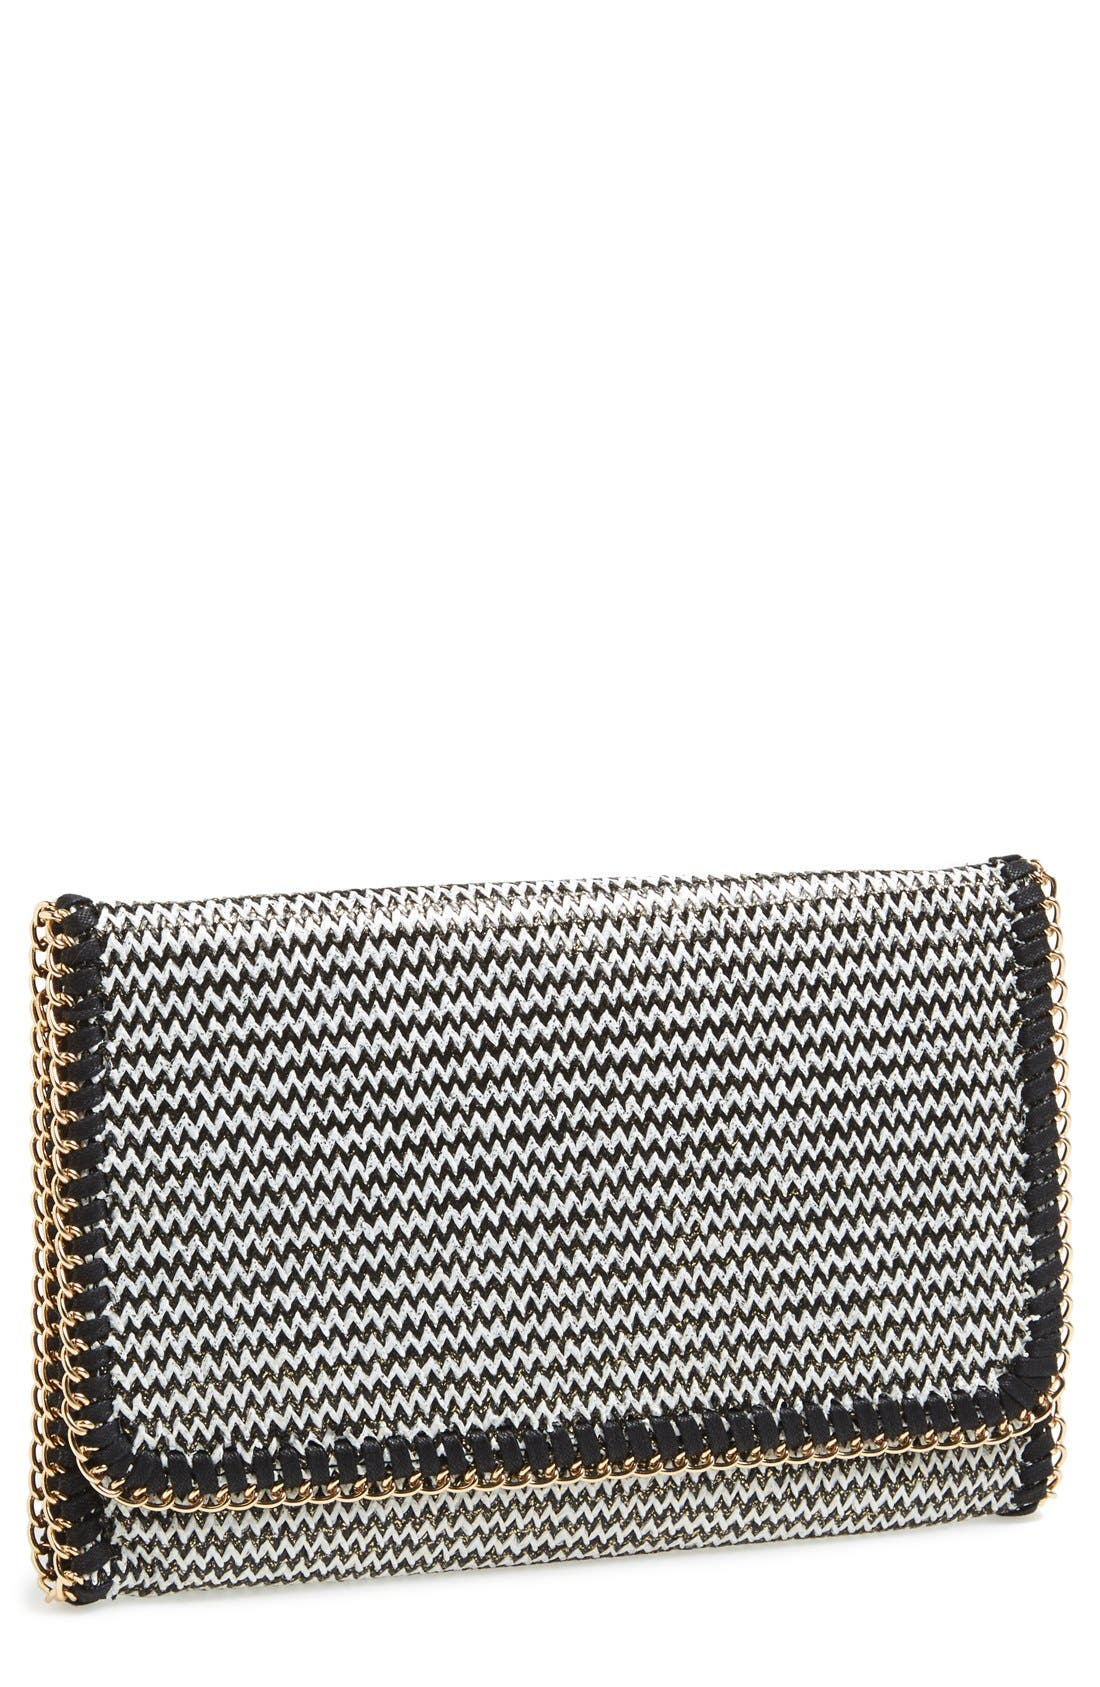 PHASE 3,                             'Zigzag' Chain Clutch,                             Main thumbnail 1, color,                             001